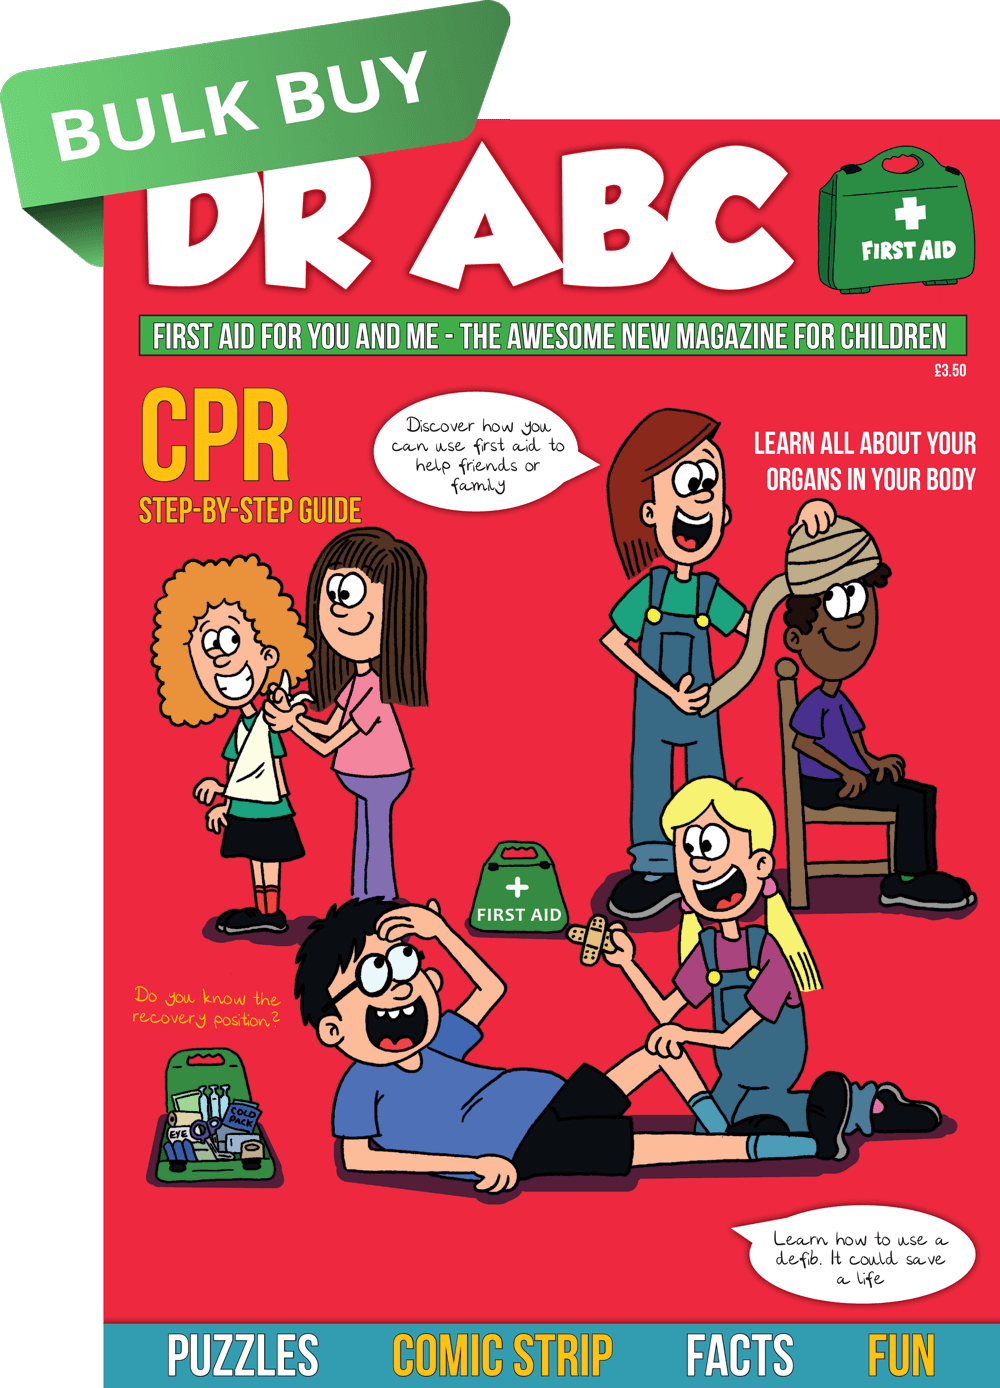 Dr ABC Magazine Front Cover